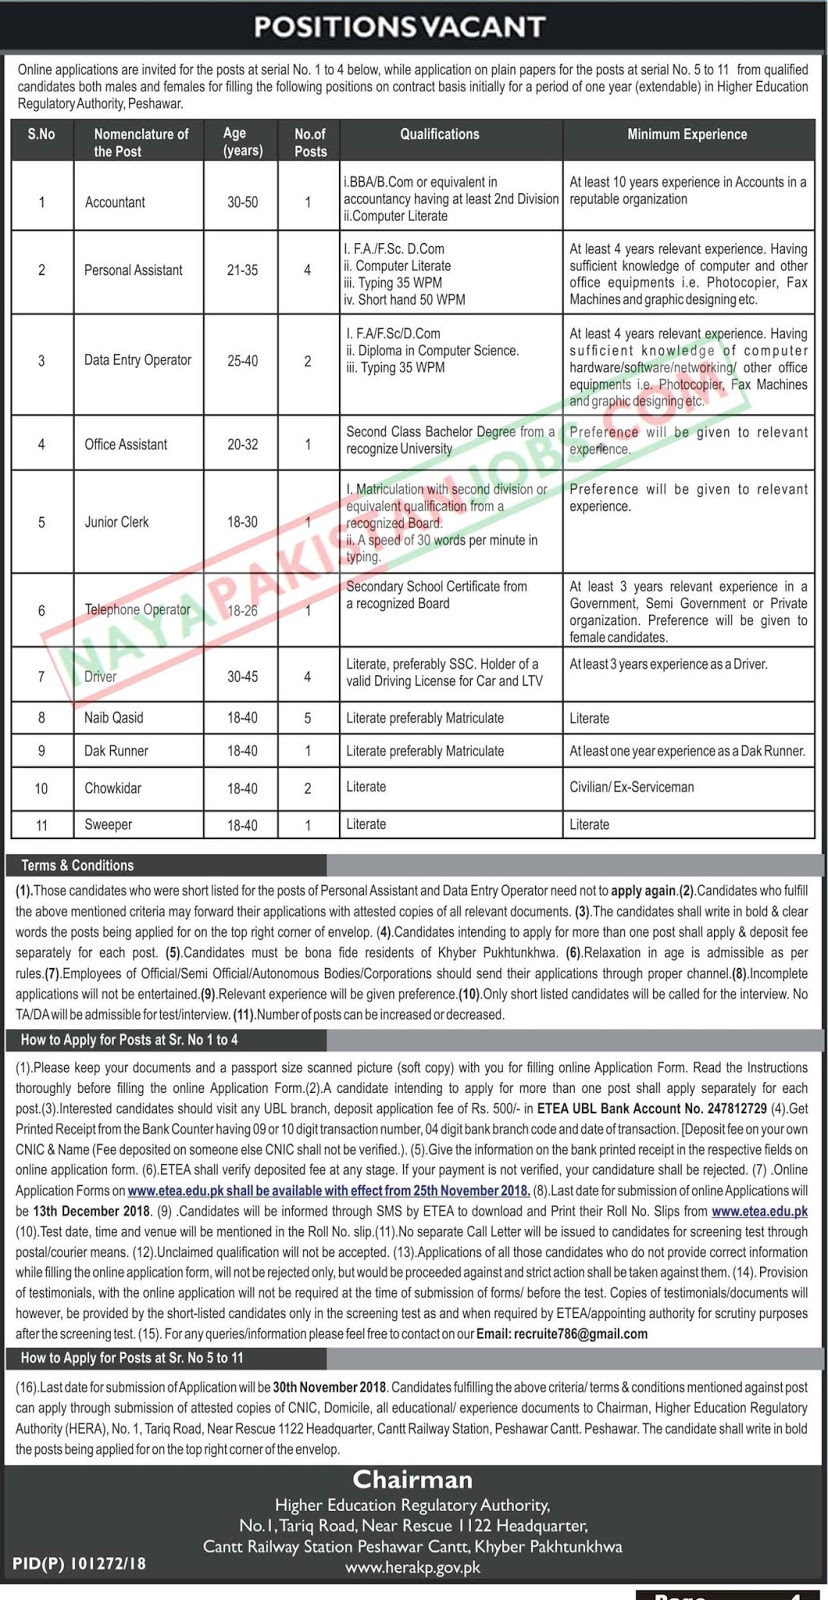 Latest Vacancies Announced in Higher Education Regulatory Authority Peshawar 14 November 2018 - Naya Pakistan